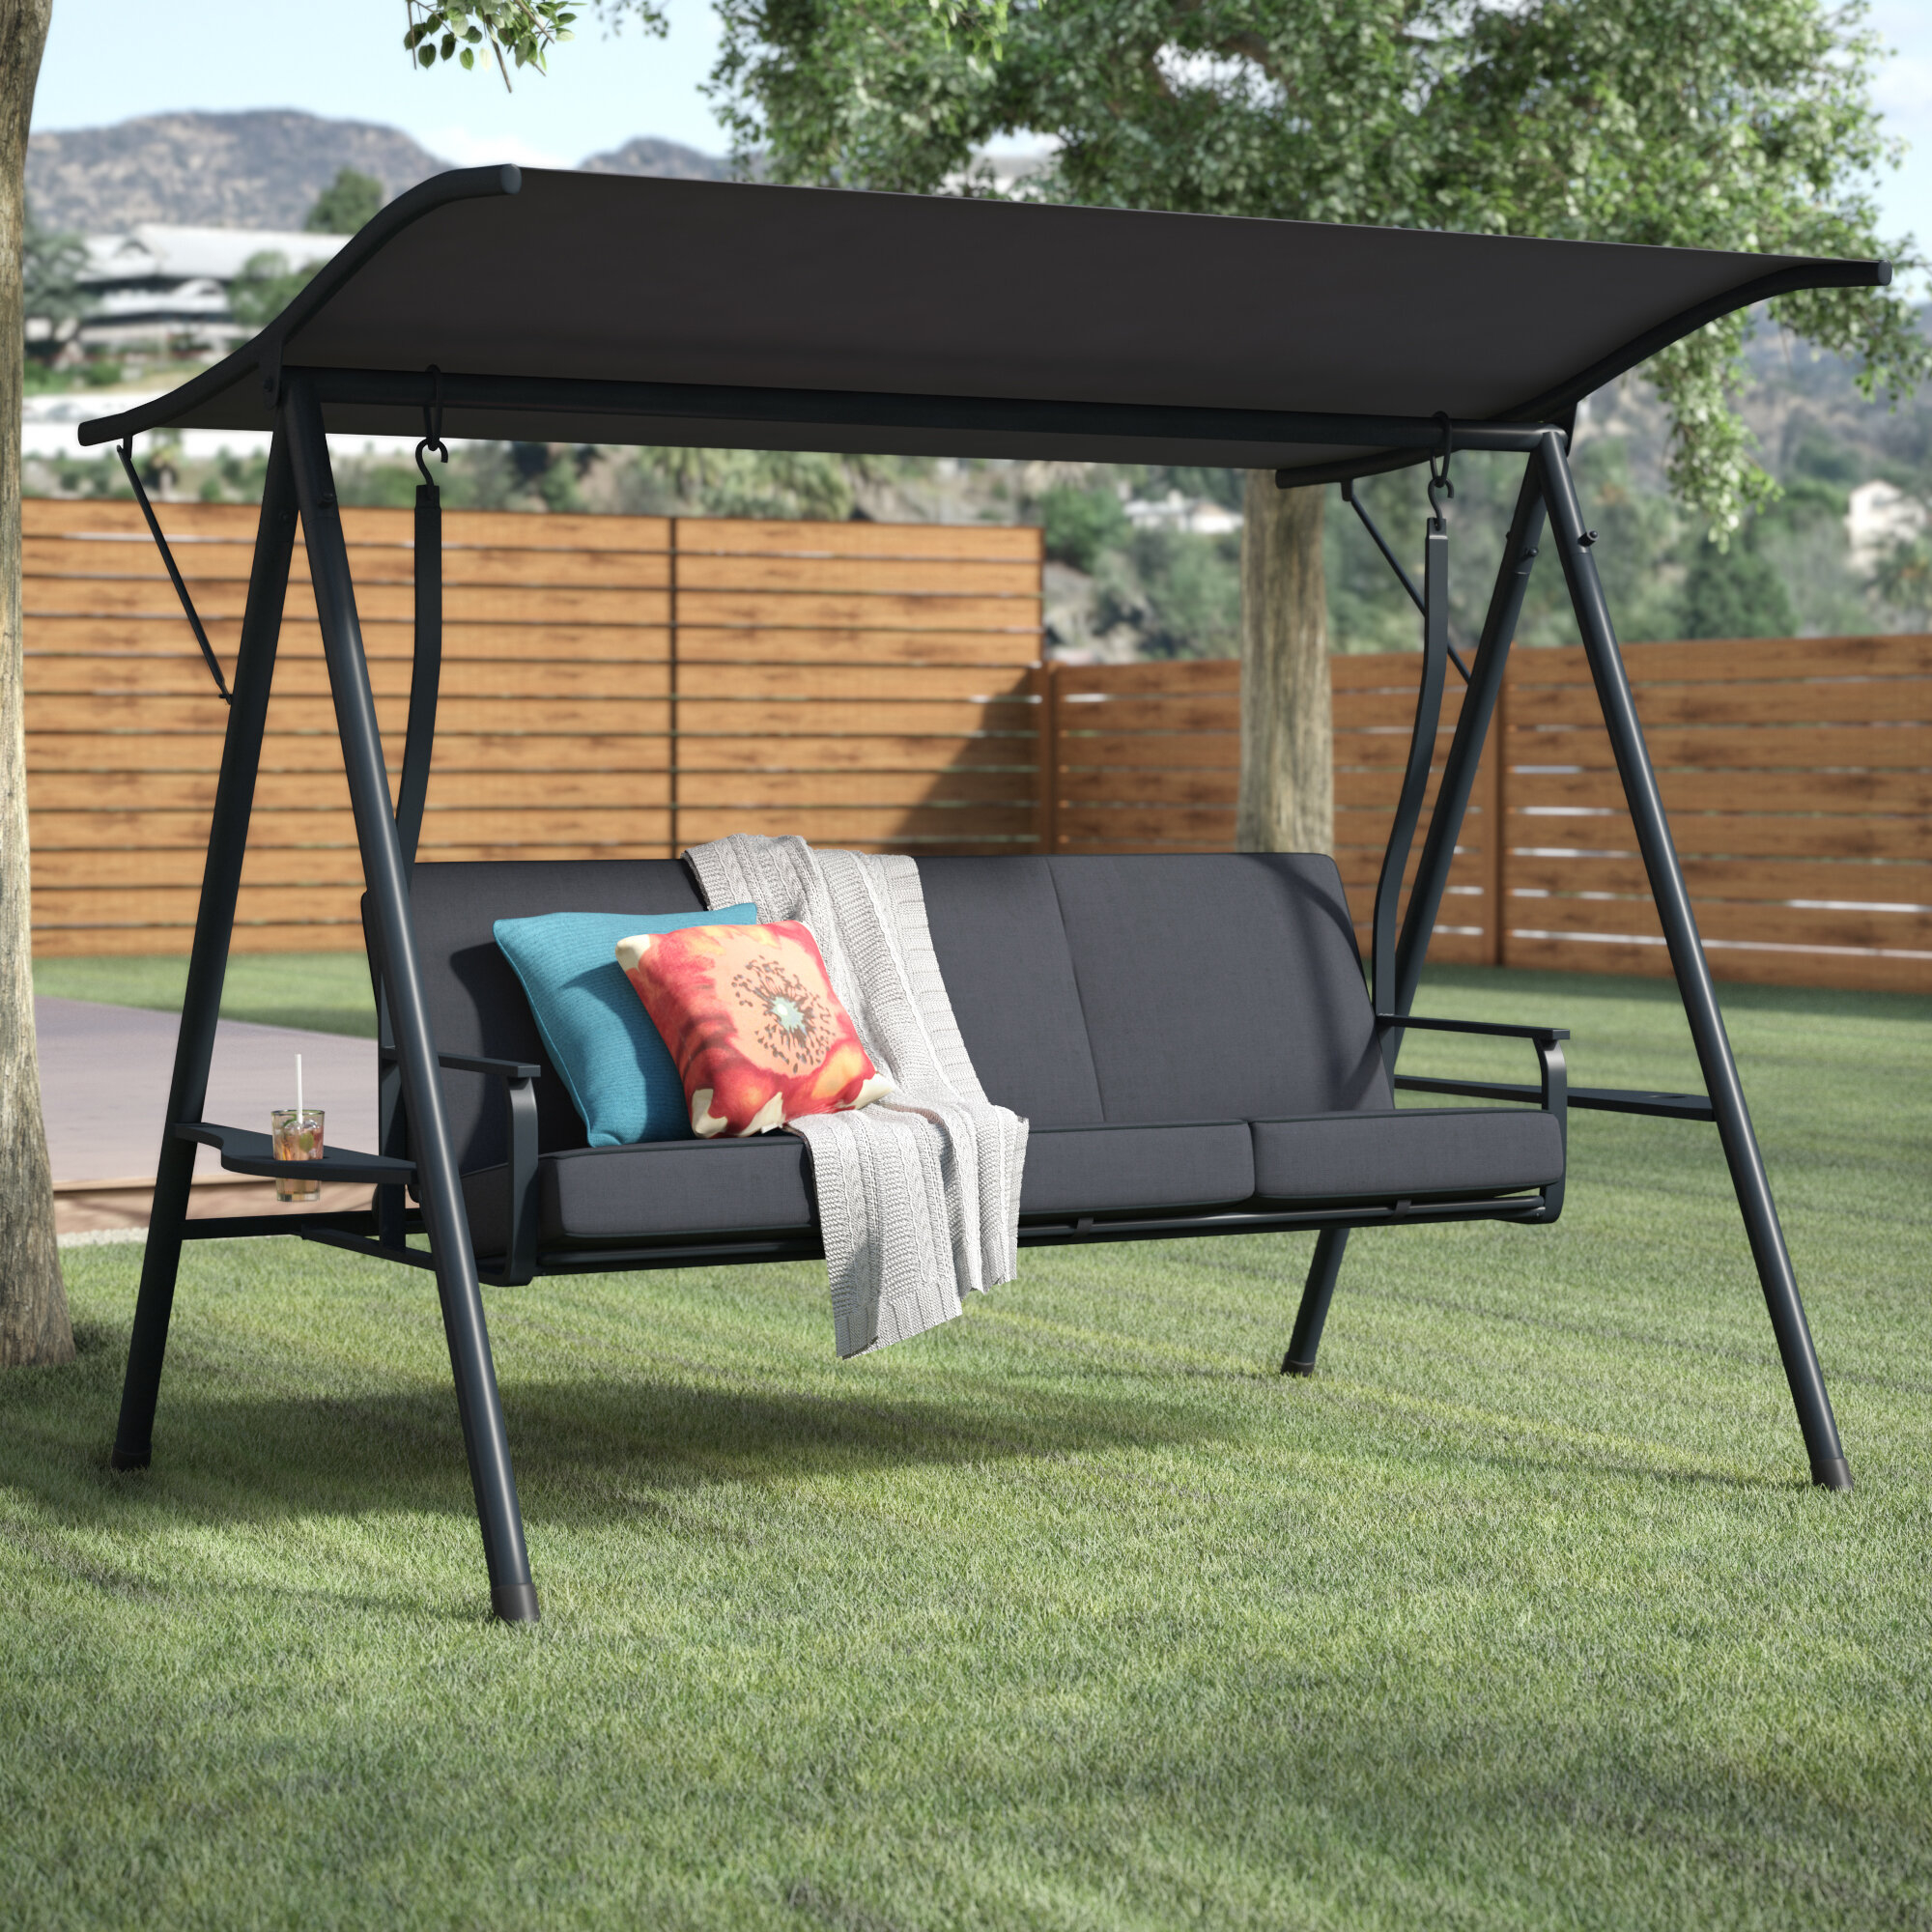 Outdoor Swing Cushions With Backs You Ll Love In 2021 Visualhunt